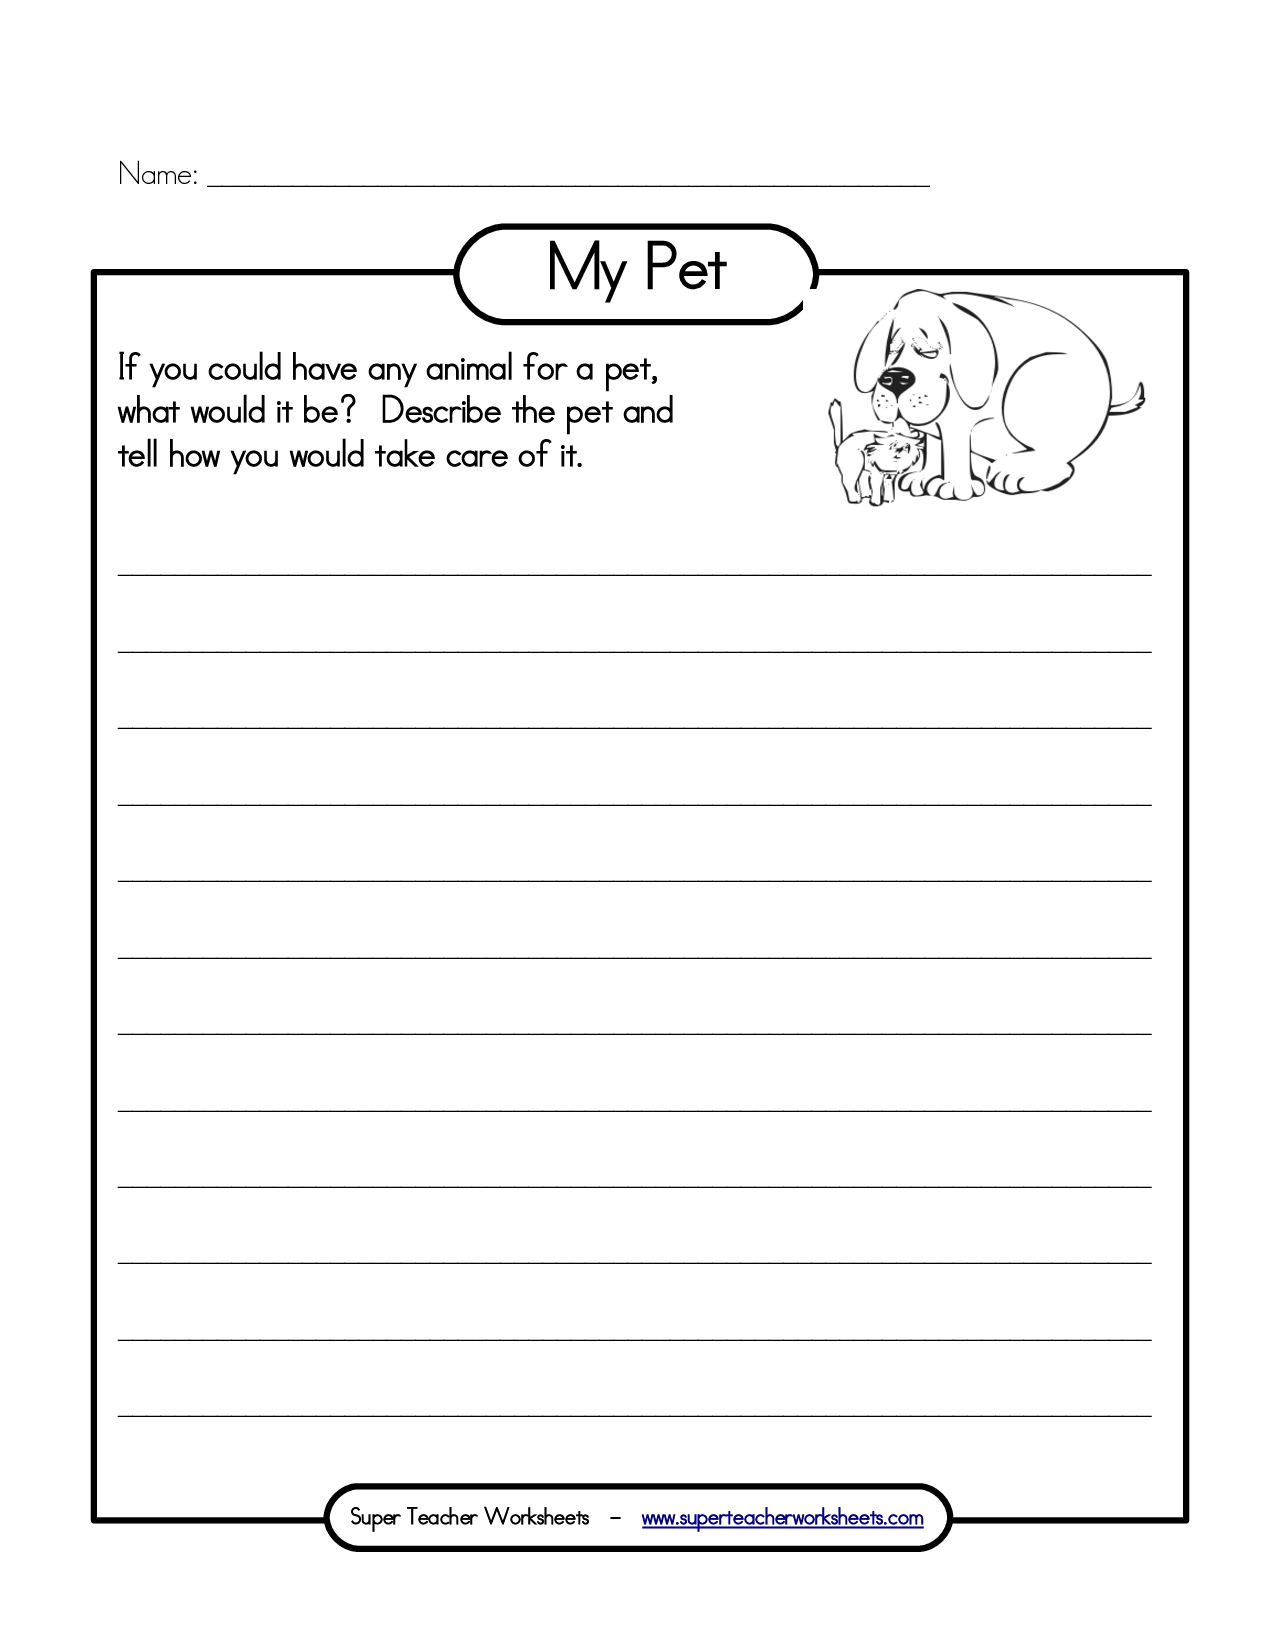 14 Best Images Of My Pet Worksheet